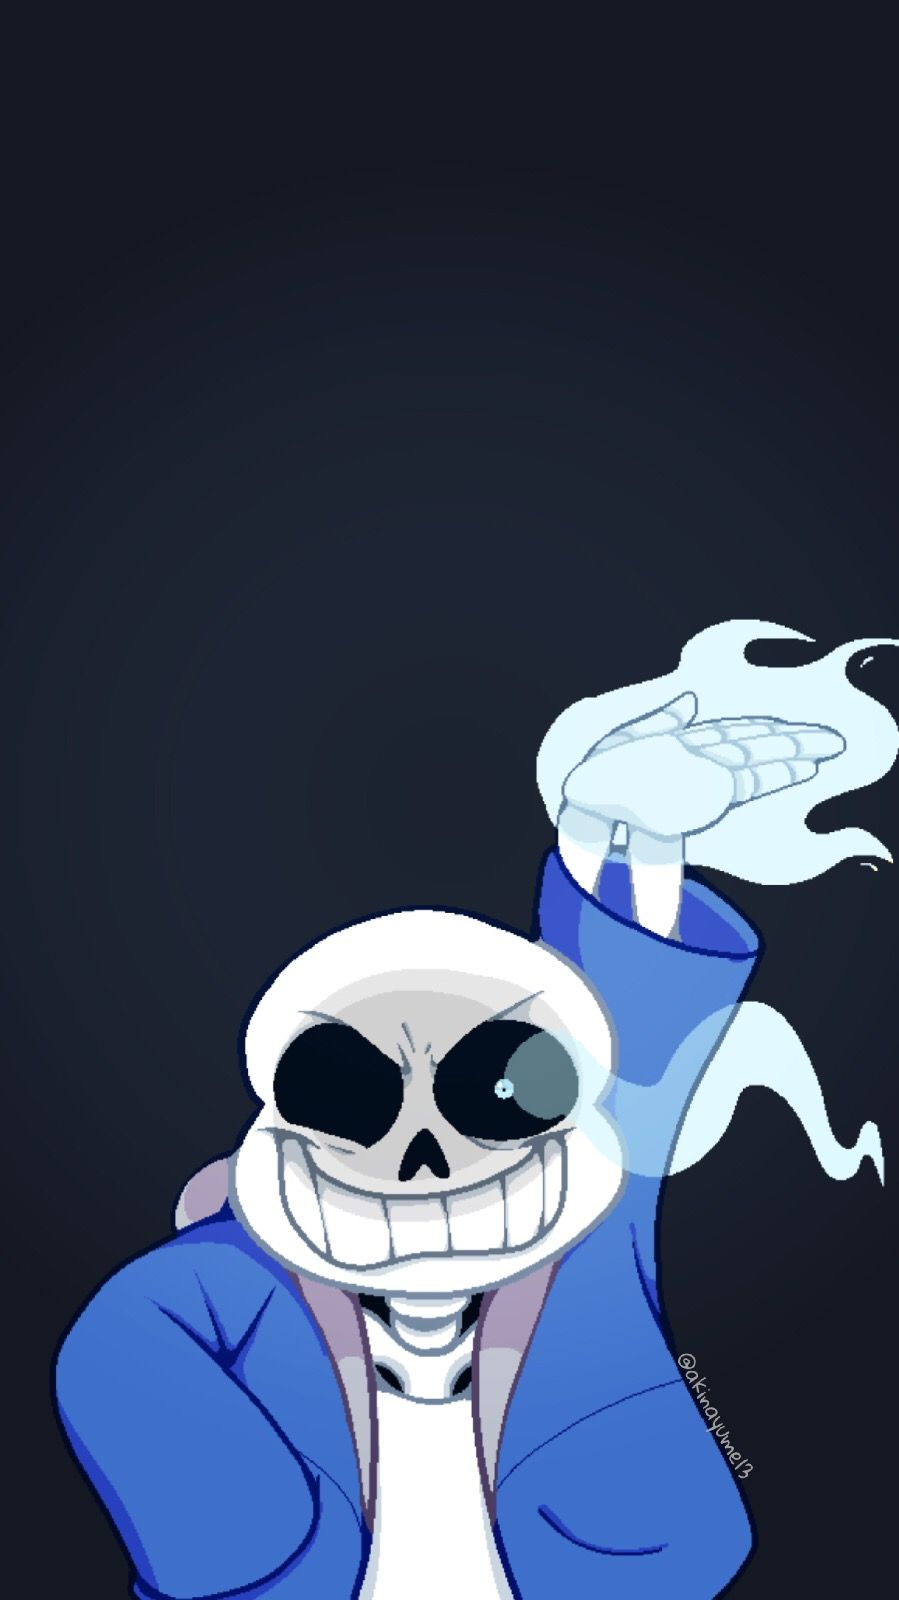 Sans de Undertale para Iphone